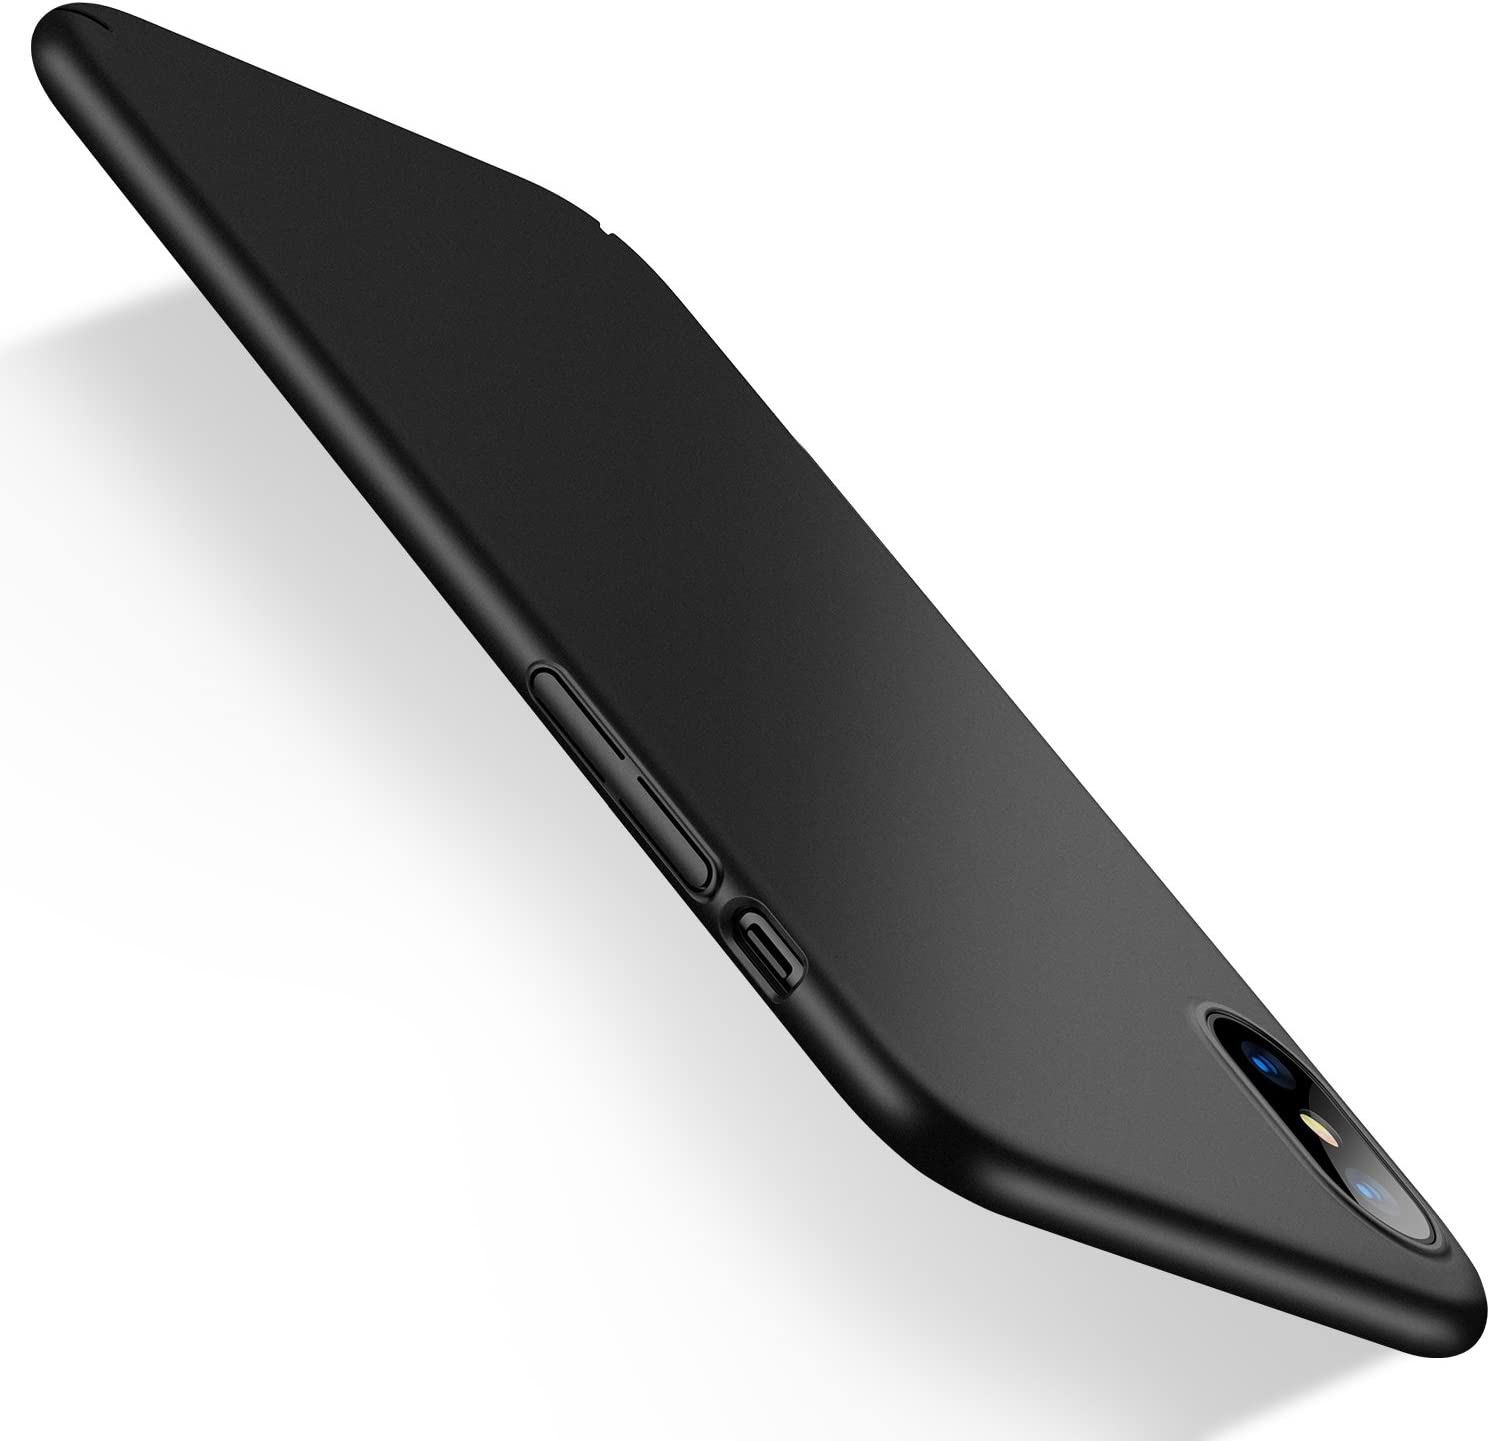 Humixx Ultra-Thin iPhone Xs Max Case, Hard Plastic PC Slim Fit Protective Cover Case with Matte Finish Coating Grip Compatible iPhone Xs Max 6.5 inch 2018- Space Black